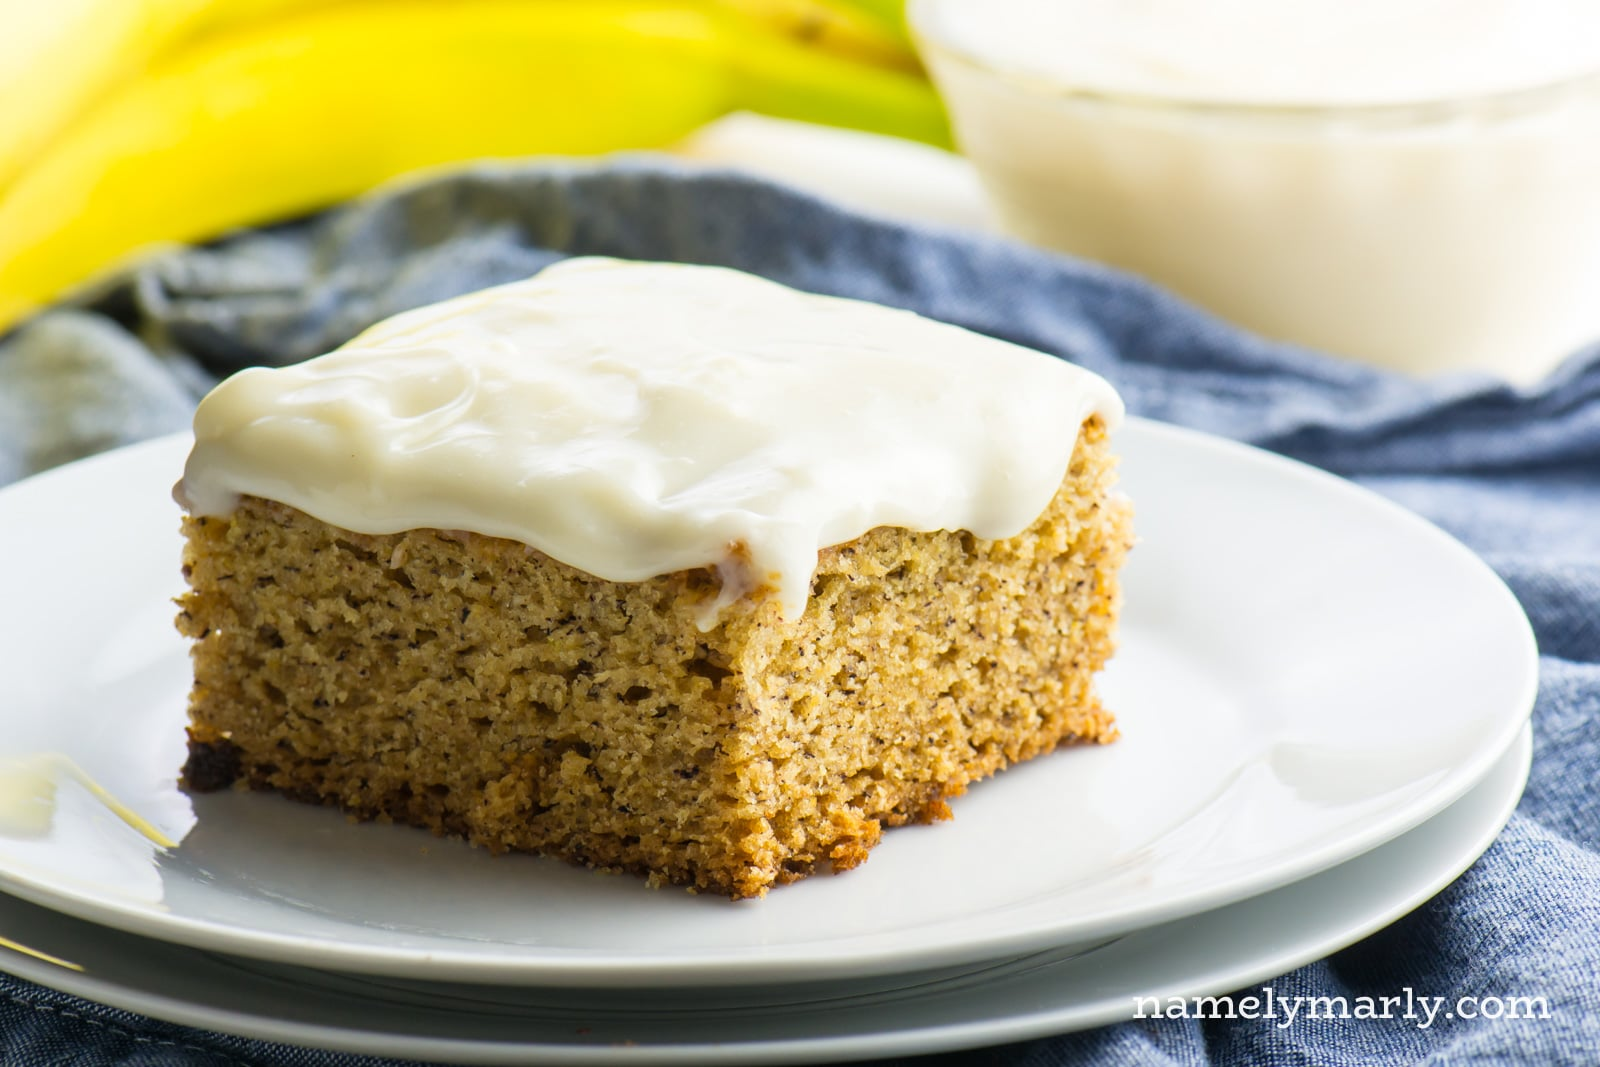 A slice of Vegan Banana Cake sits on a plate in front of bananas.